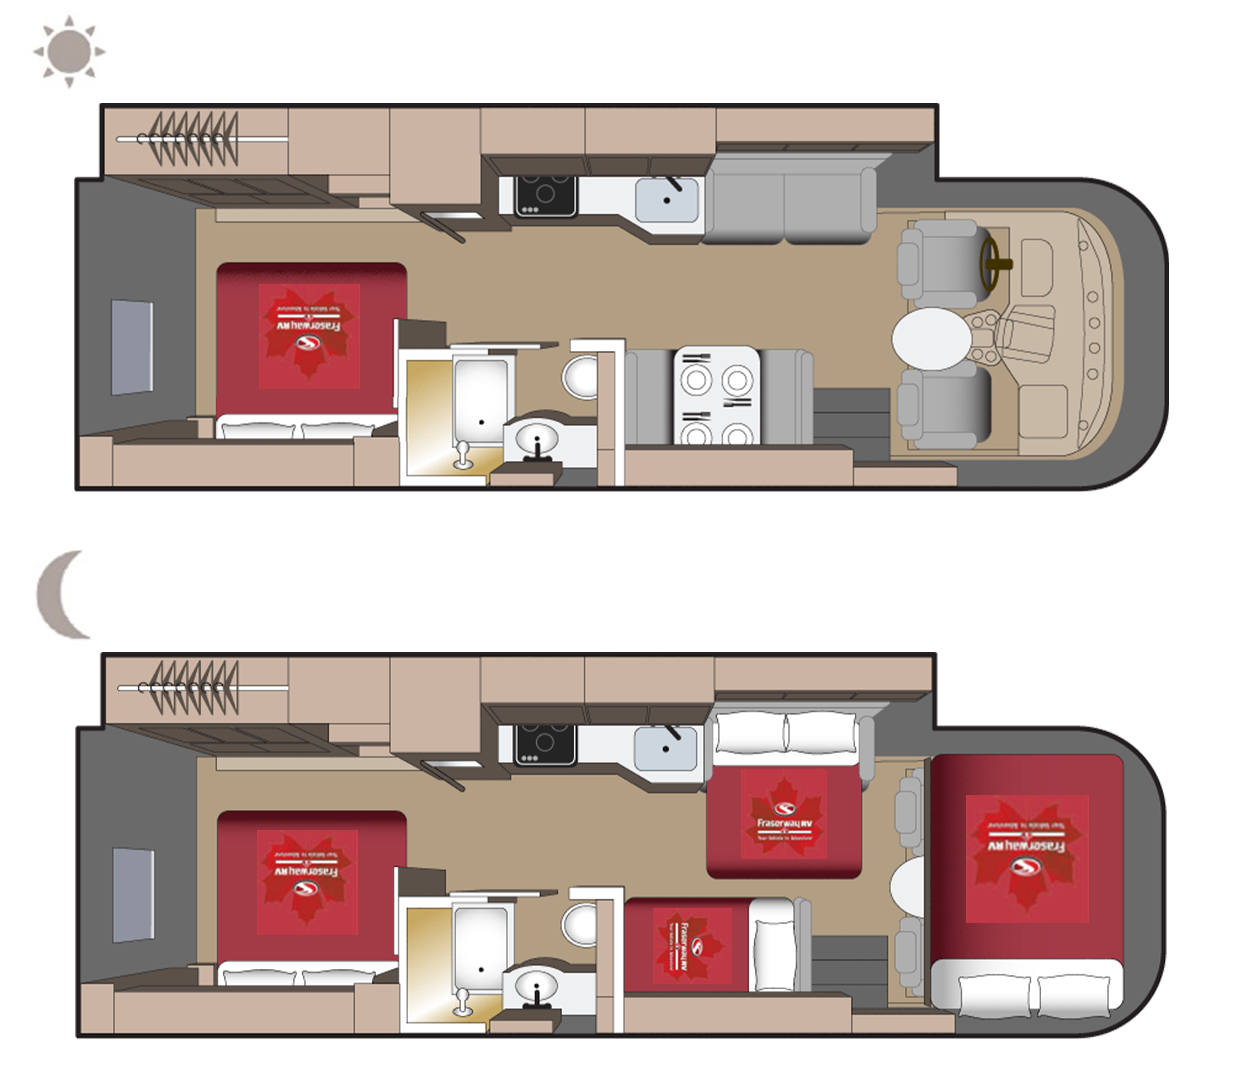 A-Luxury Motorhome Floor plan (day and night)